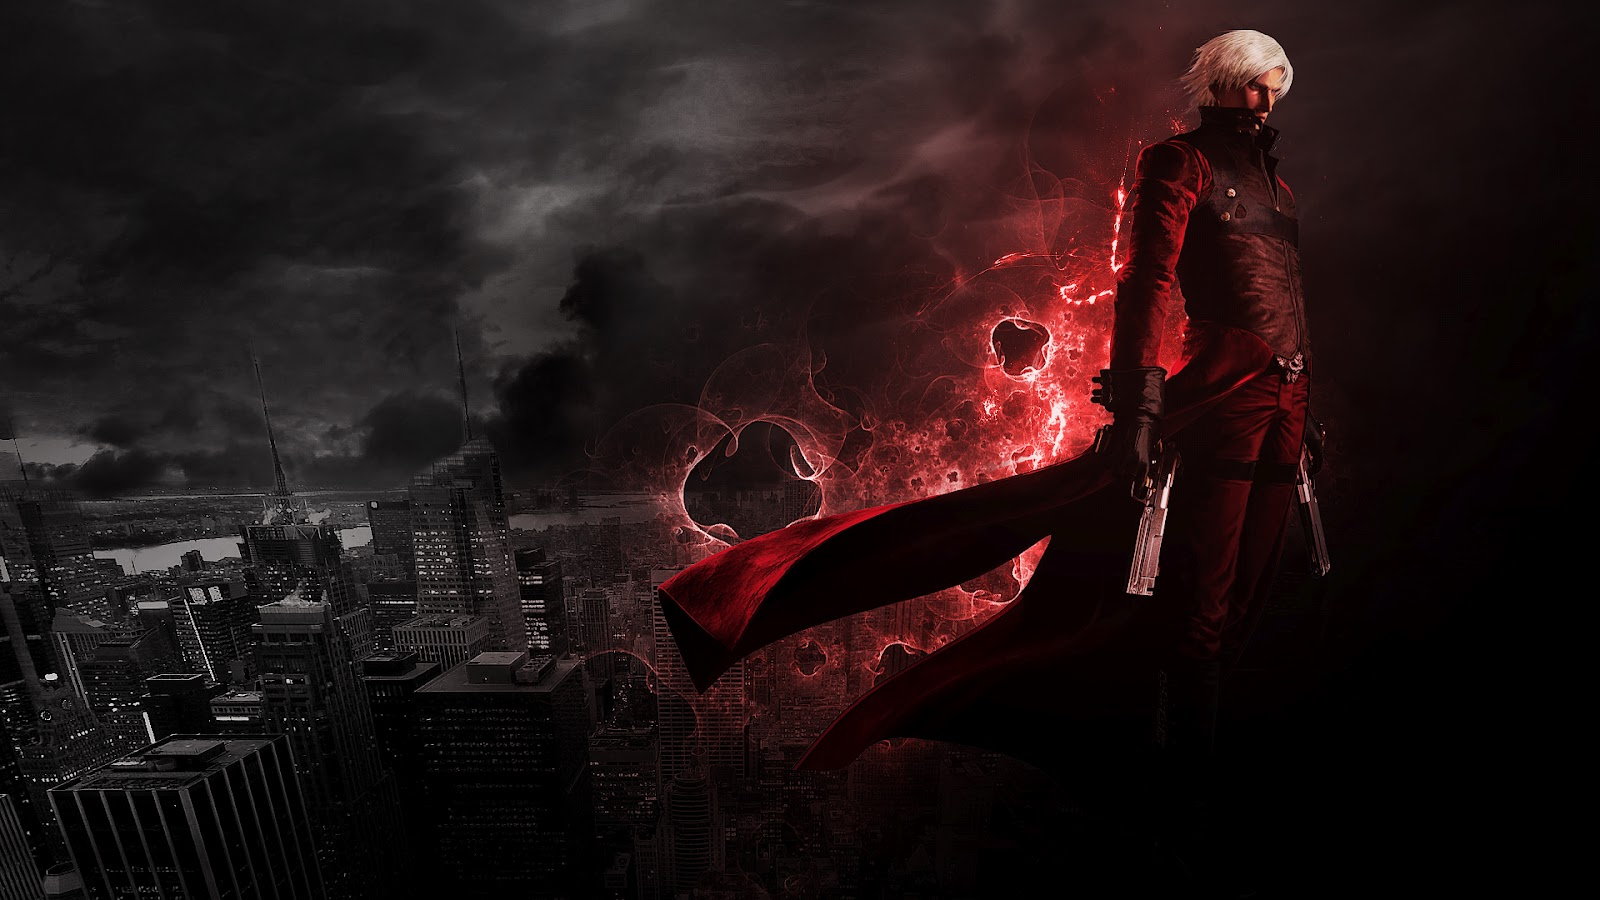 Free wallpapers hd wallpapers desktop wallpapers devil may devil may cry 2 dante voltagebd Images